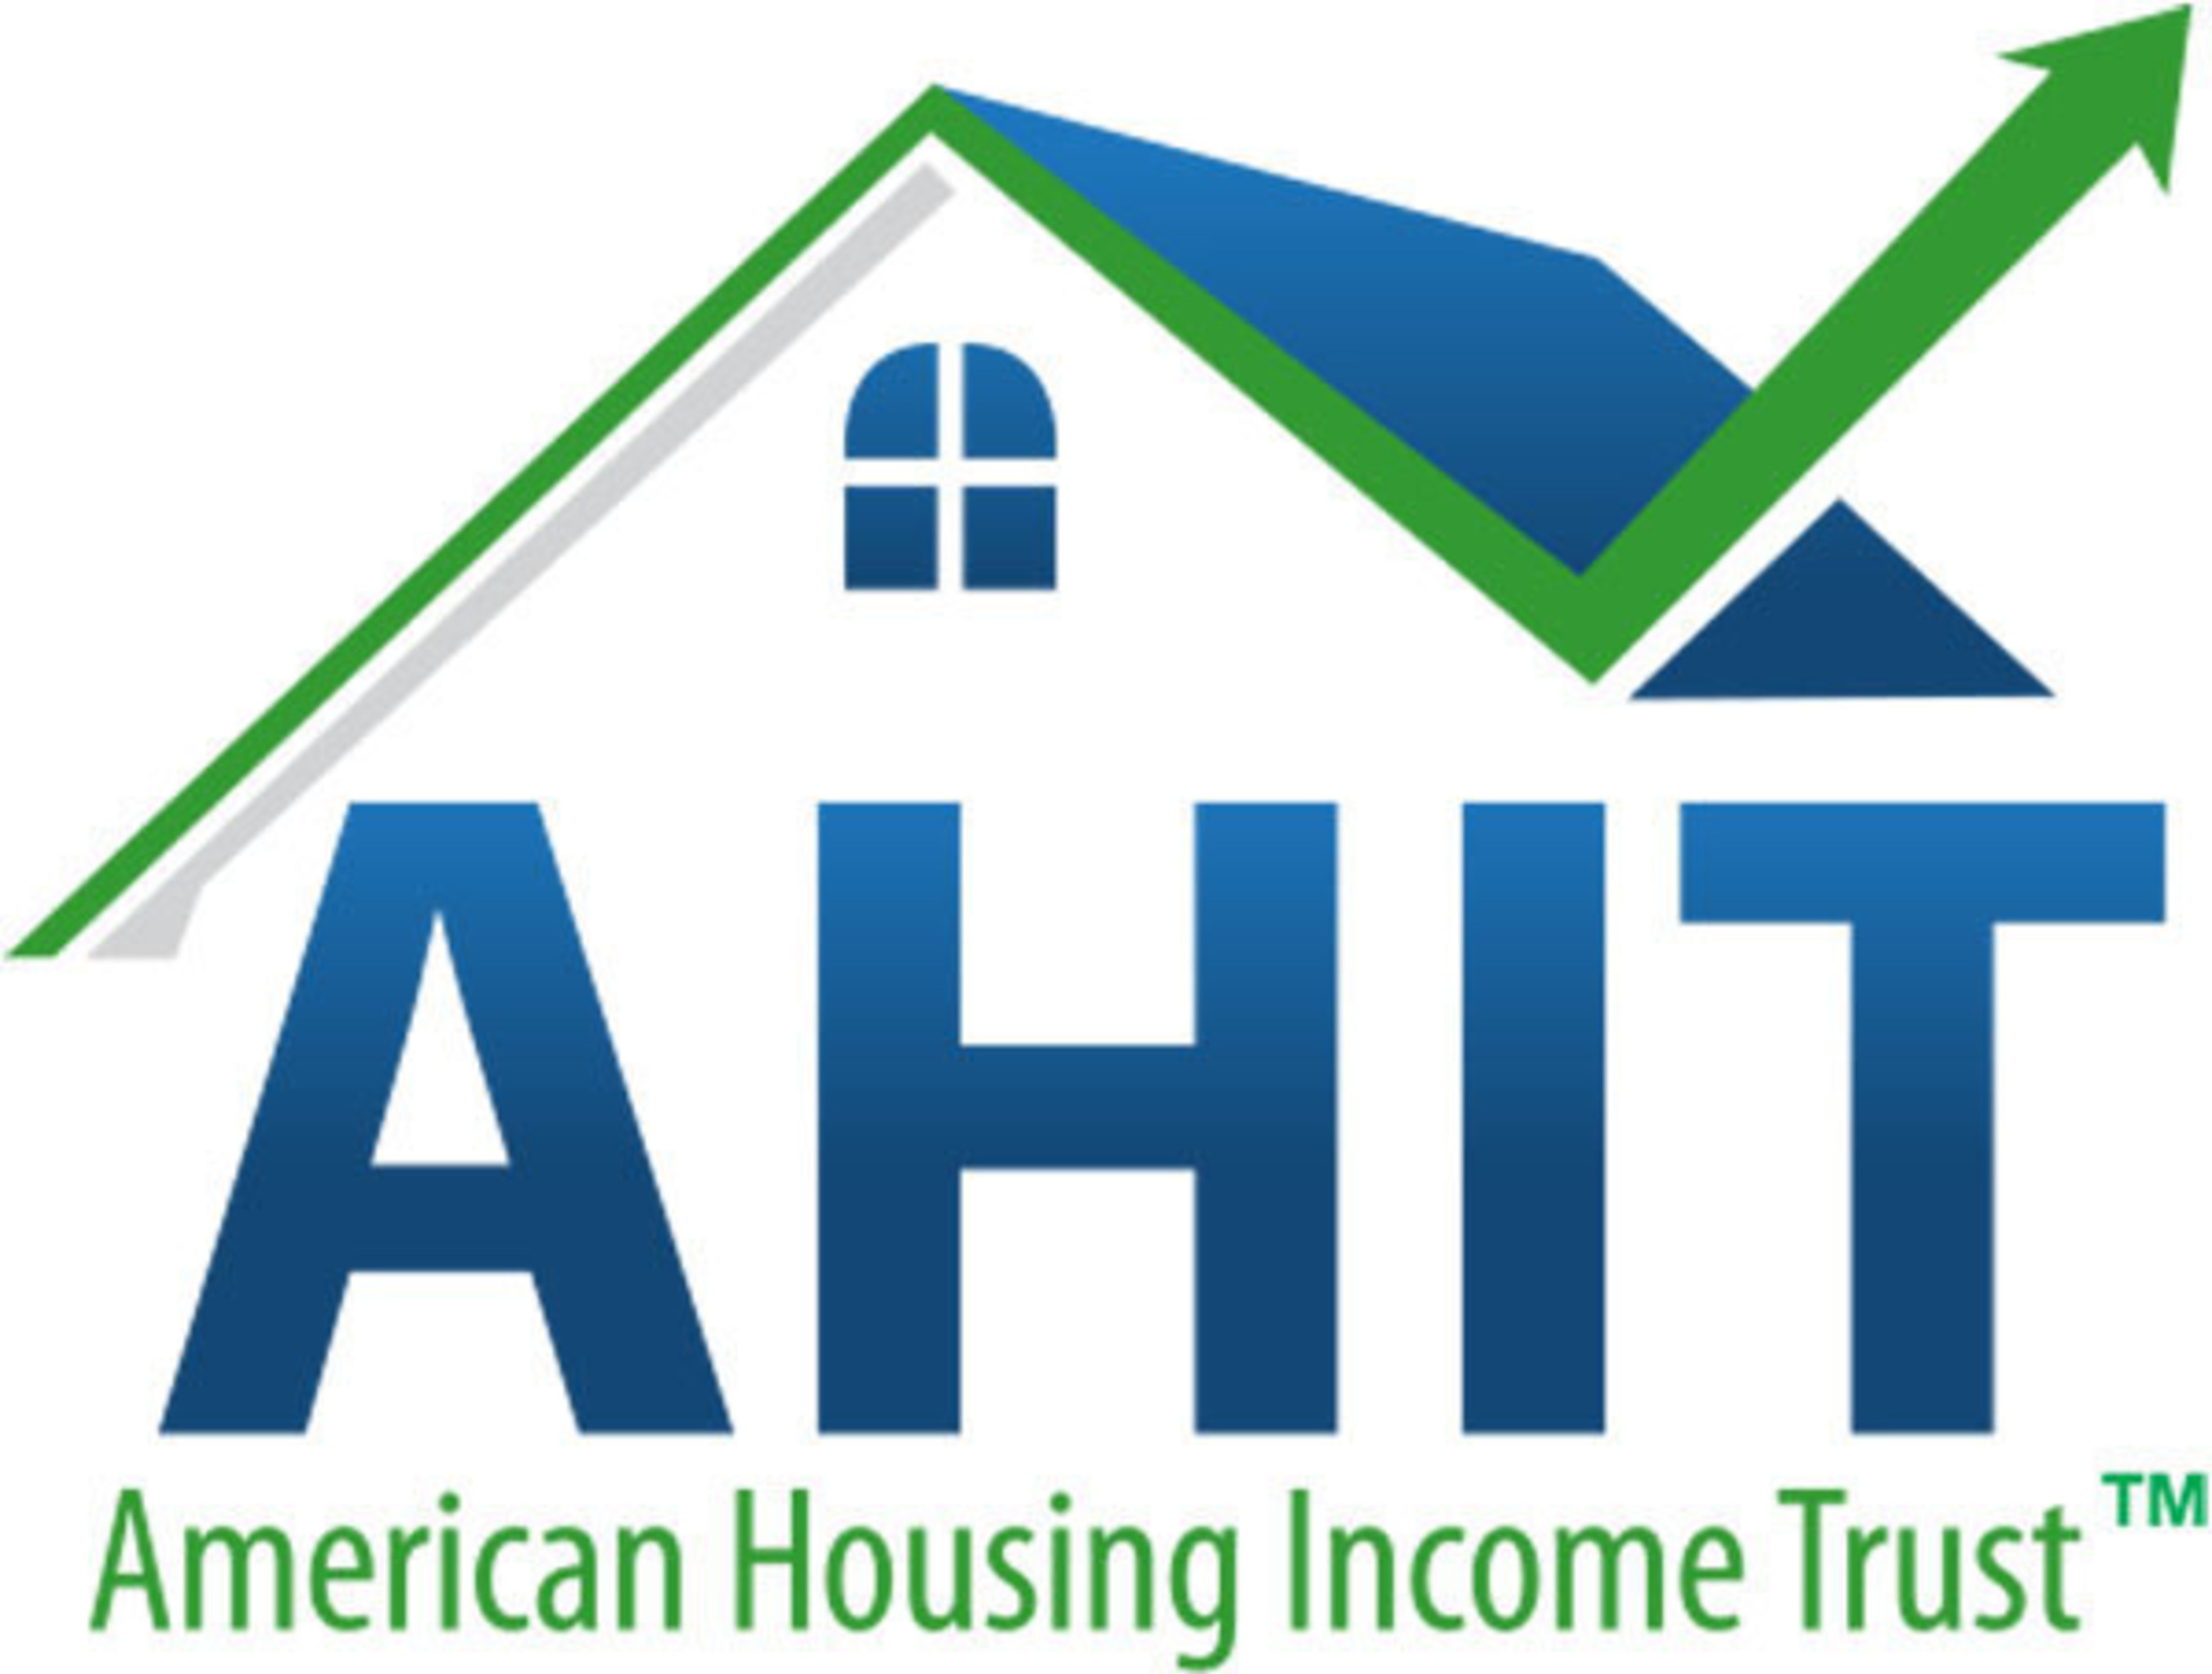 American Housing Income Trust Secures Debt Financing And Uplisting To OTC Markets